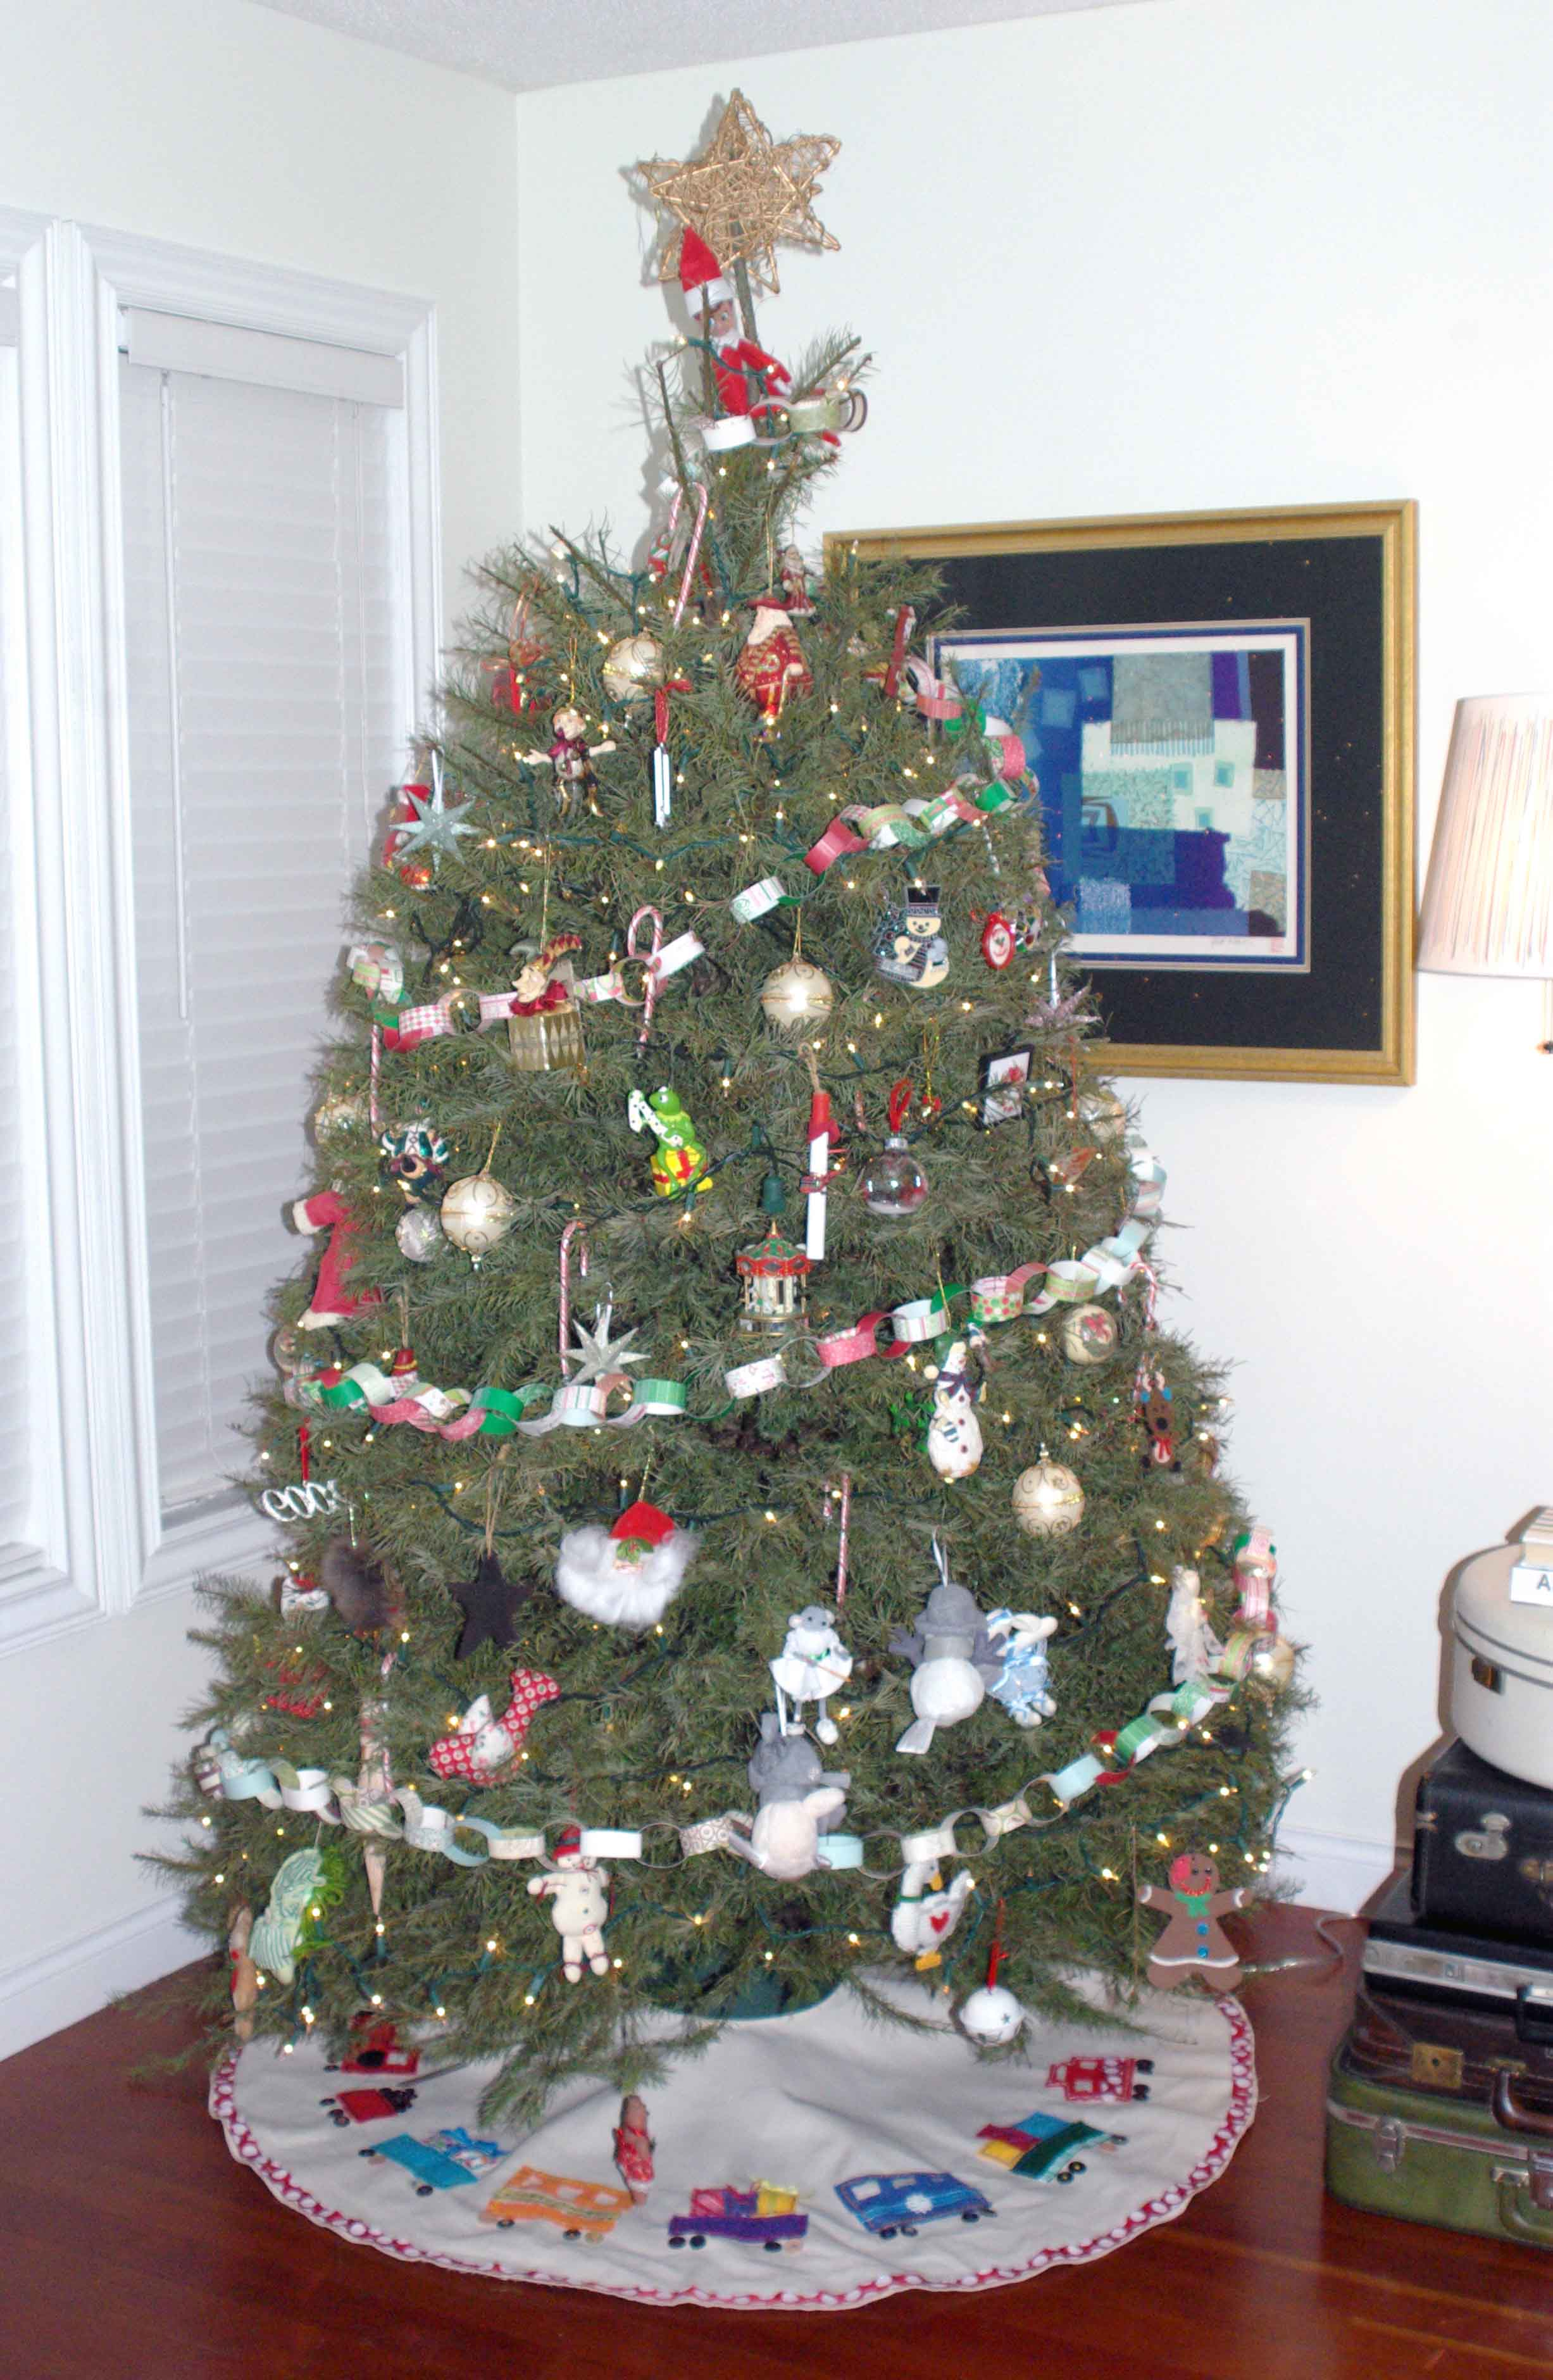 Our Cross-dressing Christmas Tree – Making A Life